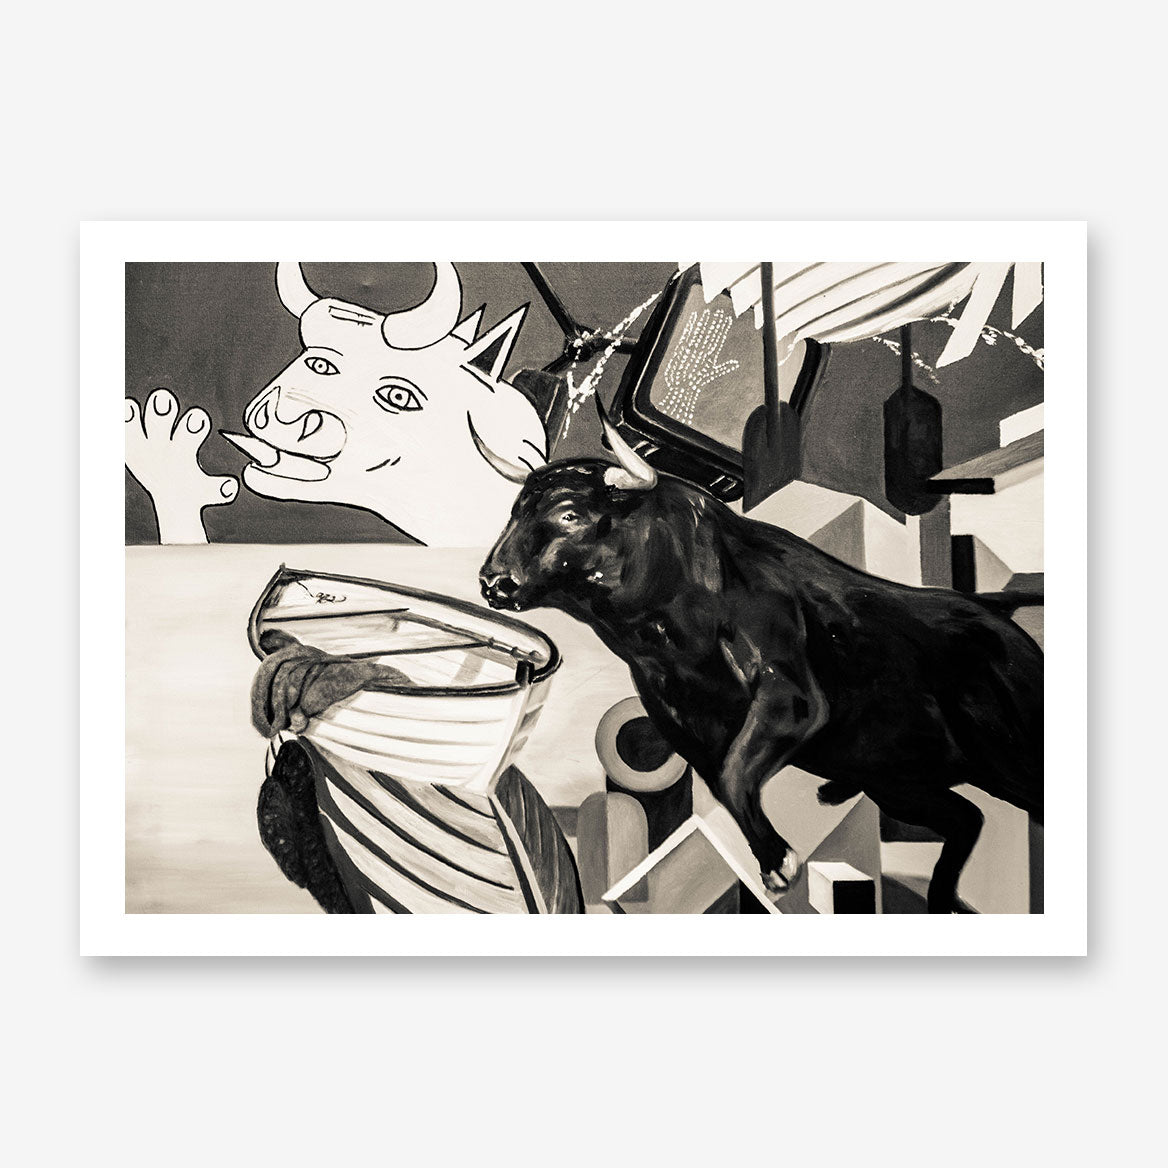 Street art style poster print of a black and white bulls paint, with arts mixture.